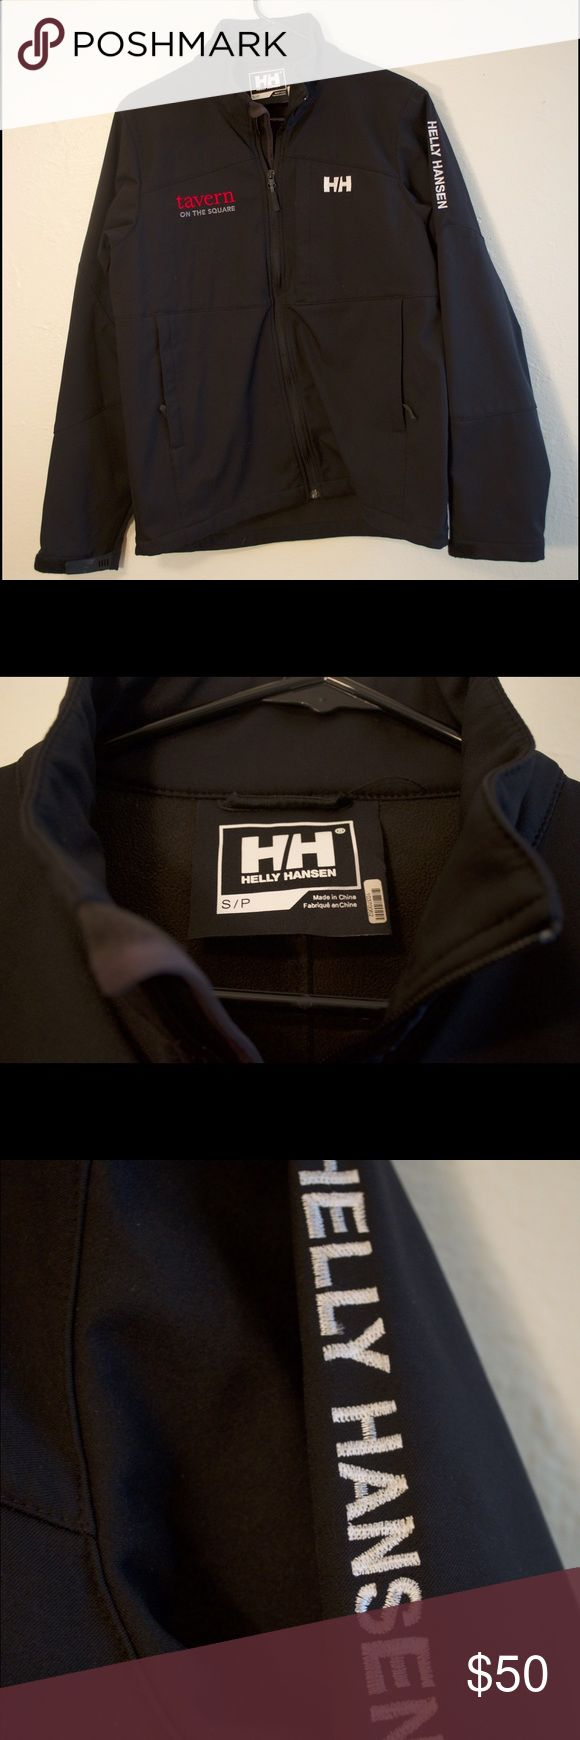 Helly Hansen women's small rain coat Helly Hansen coat. Fits a little loose on size small. Super comfortable and great for just a chilly wet day. It has a restaurant name on it from Vail, Colorado. Still a great coat. Helly Hansen Jackets & Coats Utility Jackets